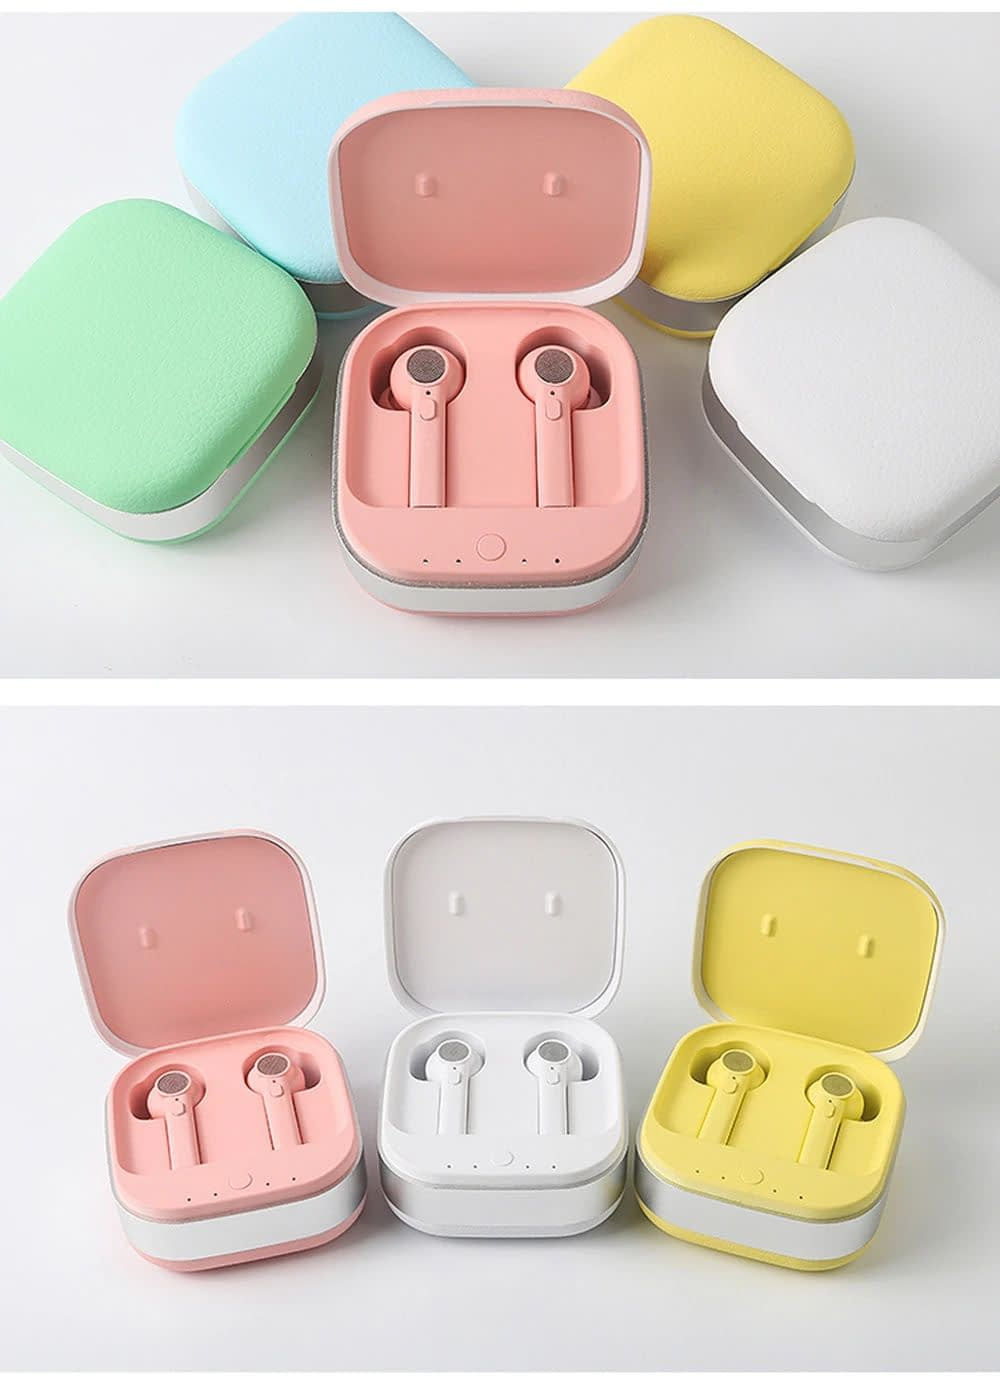 d021 tws earphone bluetooth 5.0 for iphone xiaomi huawei (1)